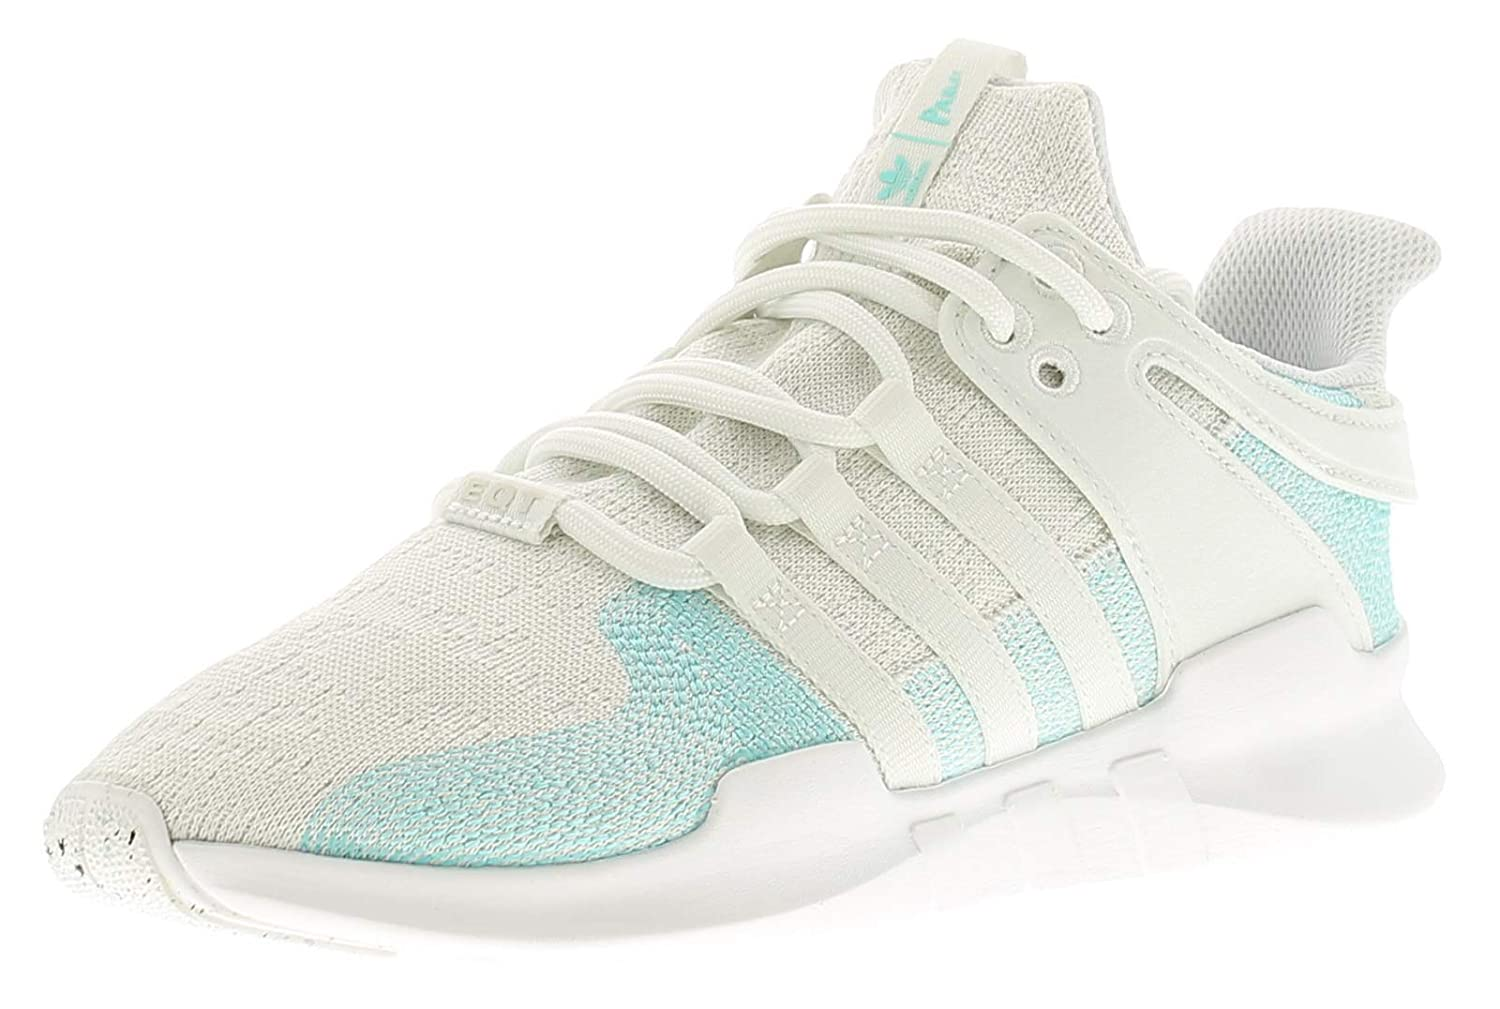 the best attitude 8e142 2295a Amazon.com | adidas - EQT Support Adv X Parley - AC7804 ...